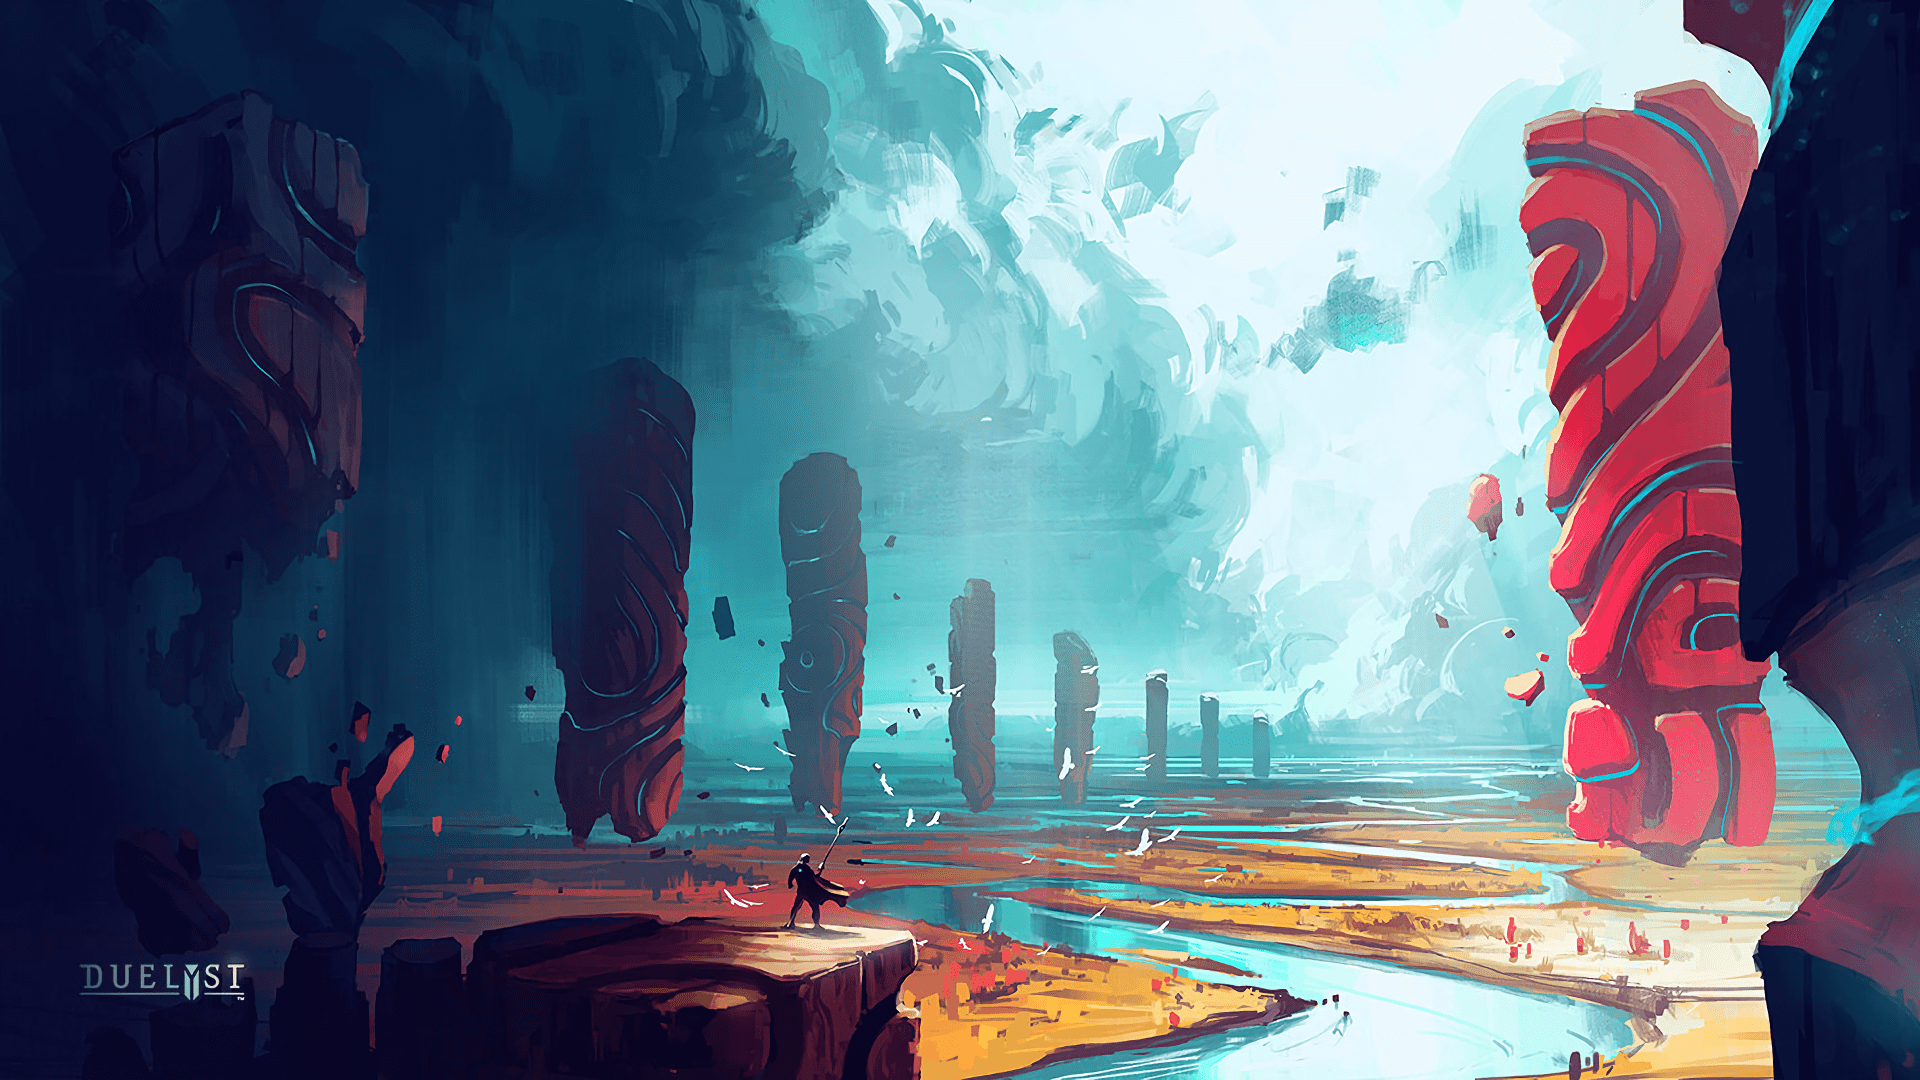 Duelyst Hd Wallpaper  Background Image  1920x1080 Id